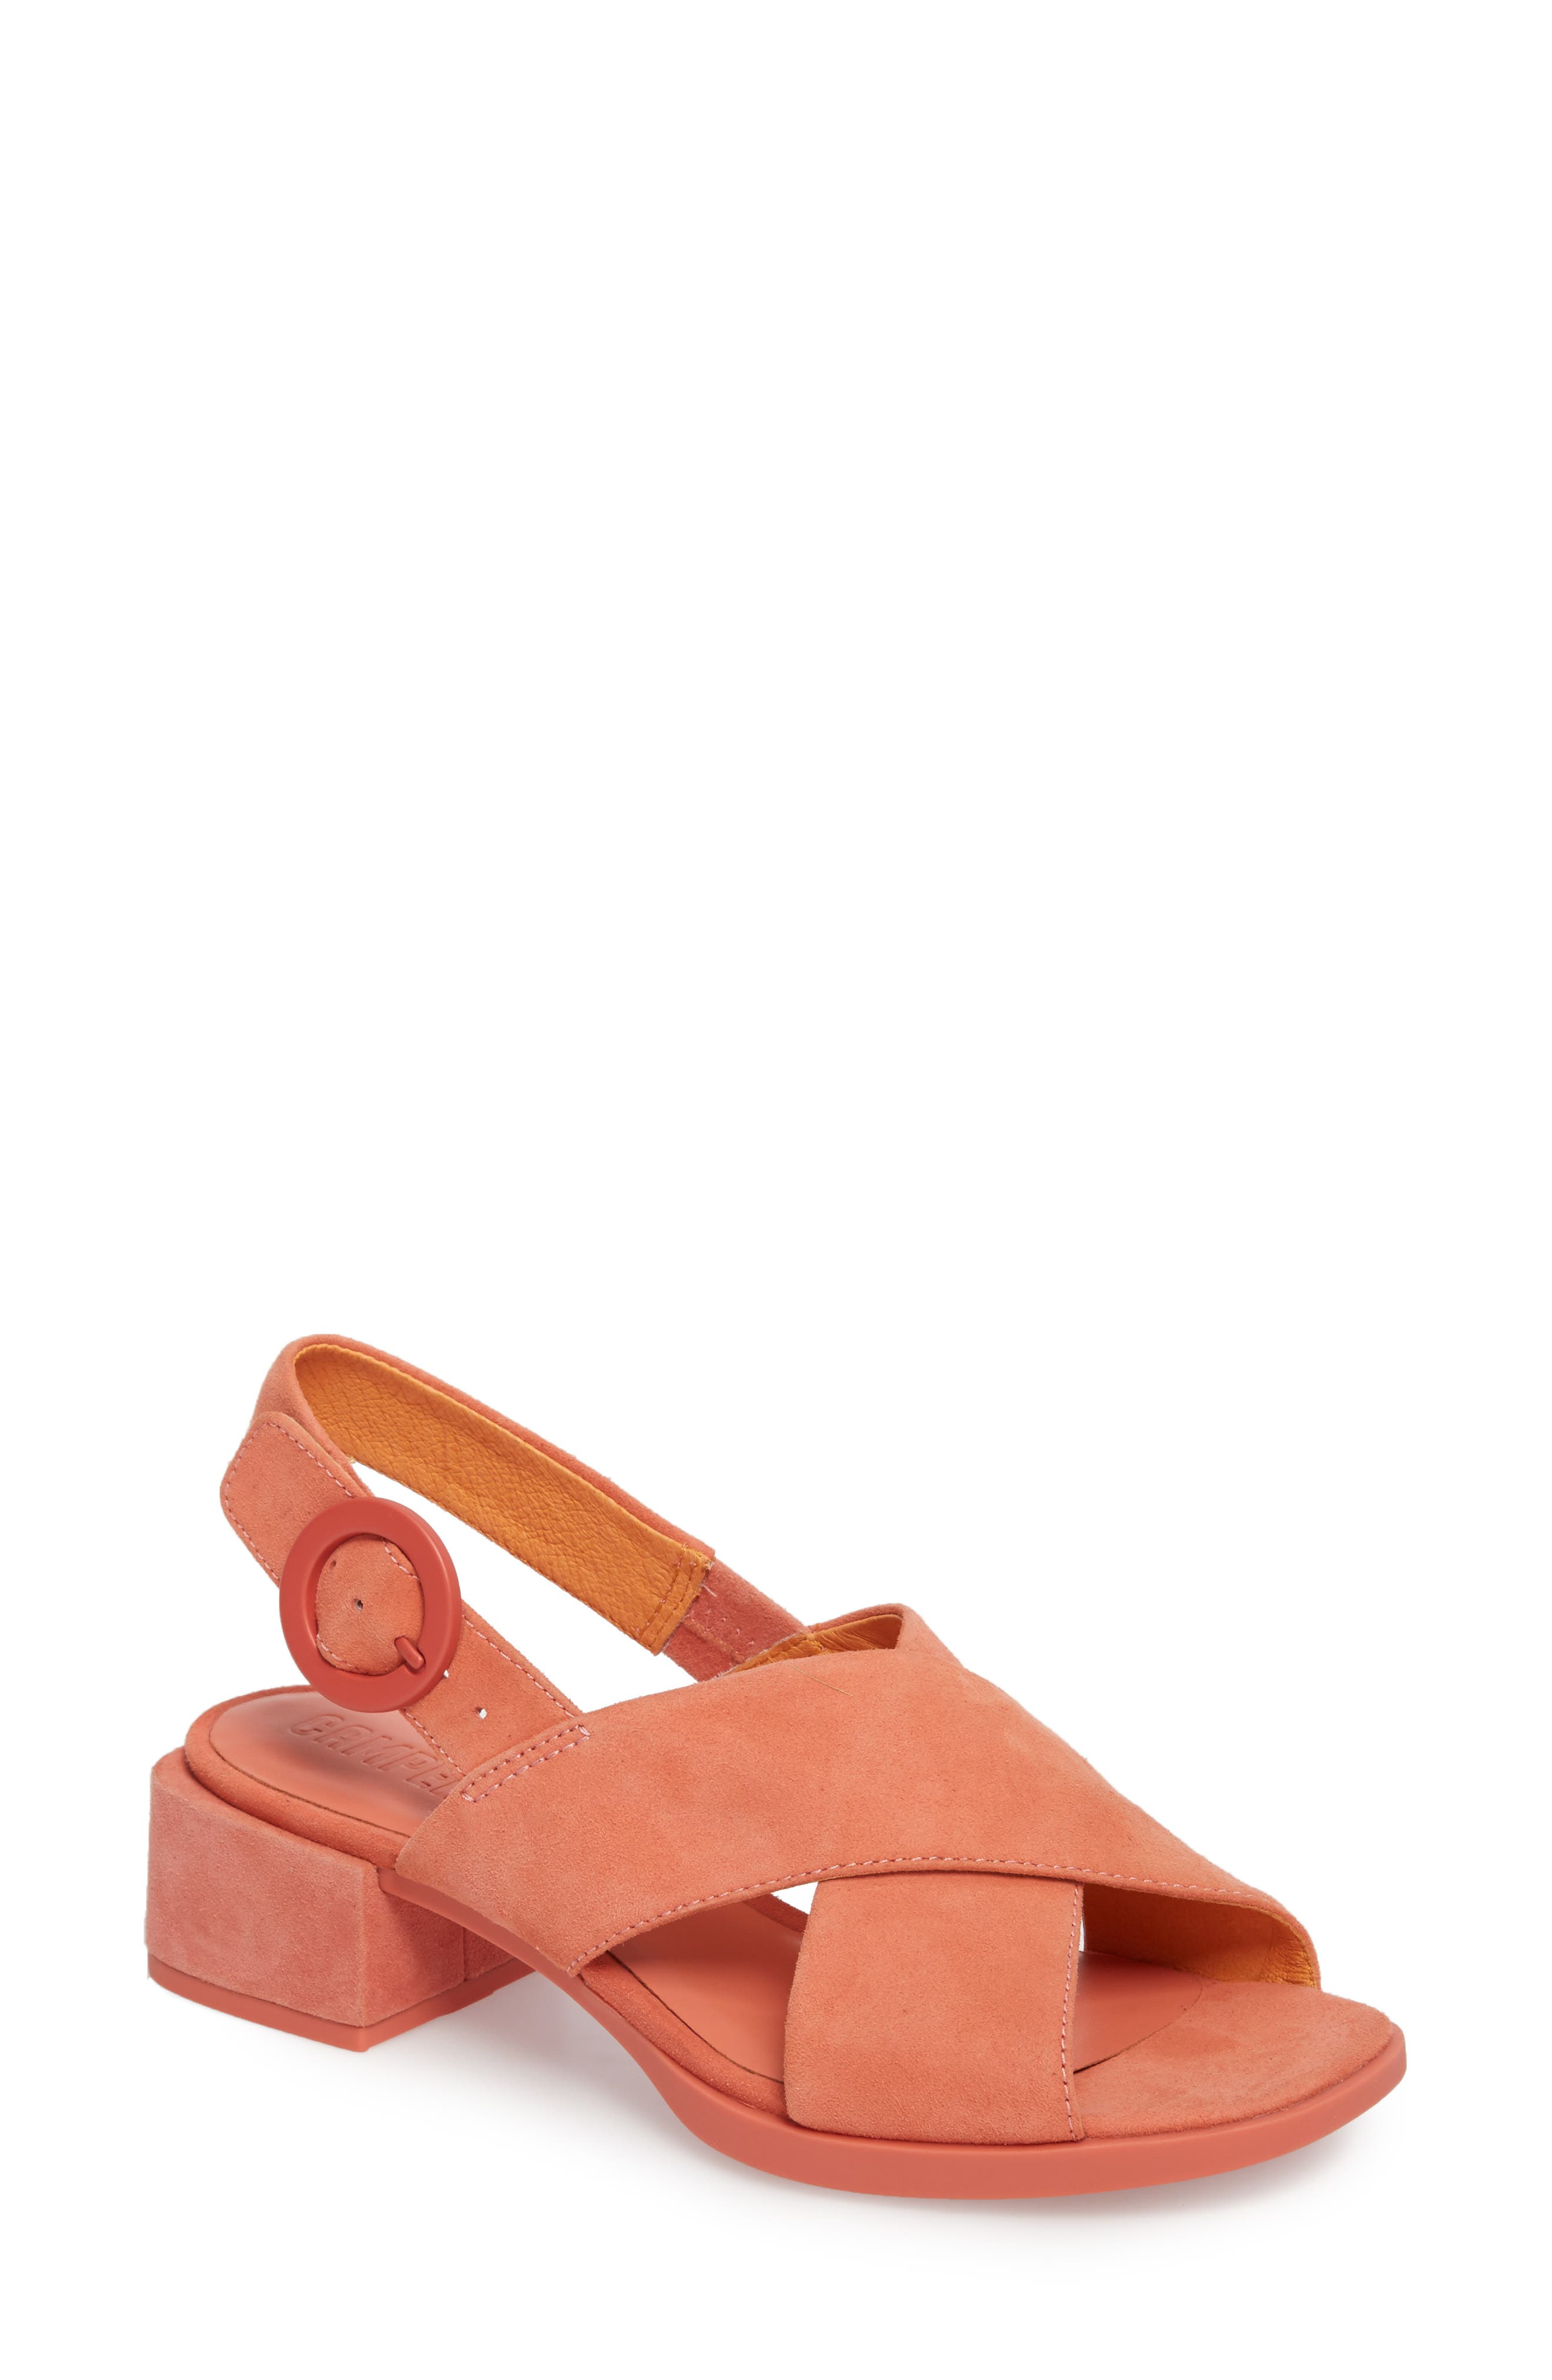 Kobo Cross Strap Sandal,                             Main thumbnail 1, color,                             MEDIUM PINK LEATHER